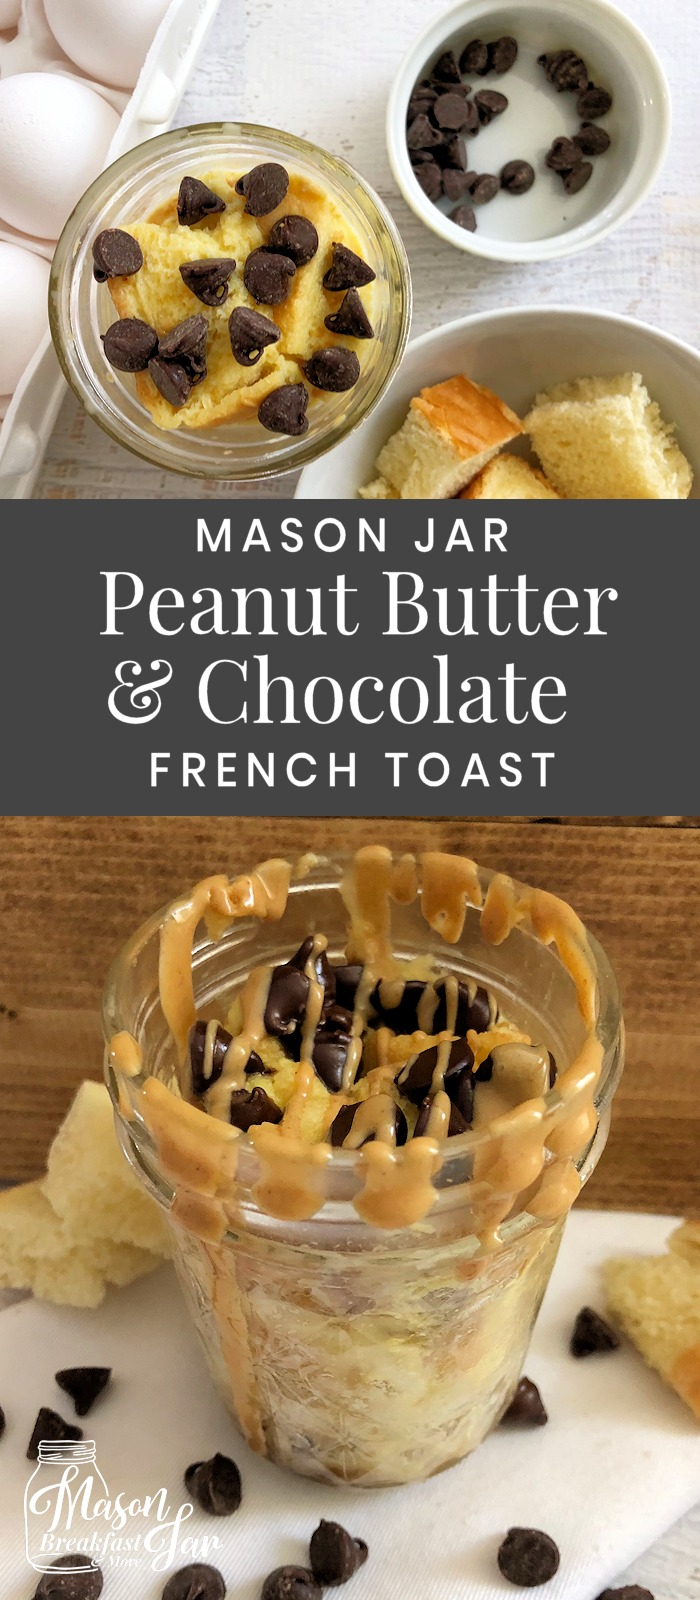 Do you like to start your day with a little sweetness? Then here's your new breakfast BFF, Mason Jar Peanut Butter & Chocolate Microwave French Toast. You can whip up this delicious Mason jar recipe in a few minutes then you can grab it and go. #masonjarideas #frenchtoastrecipe #frenchtoasteasy #masonjarrecipe